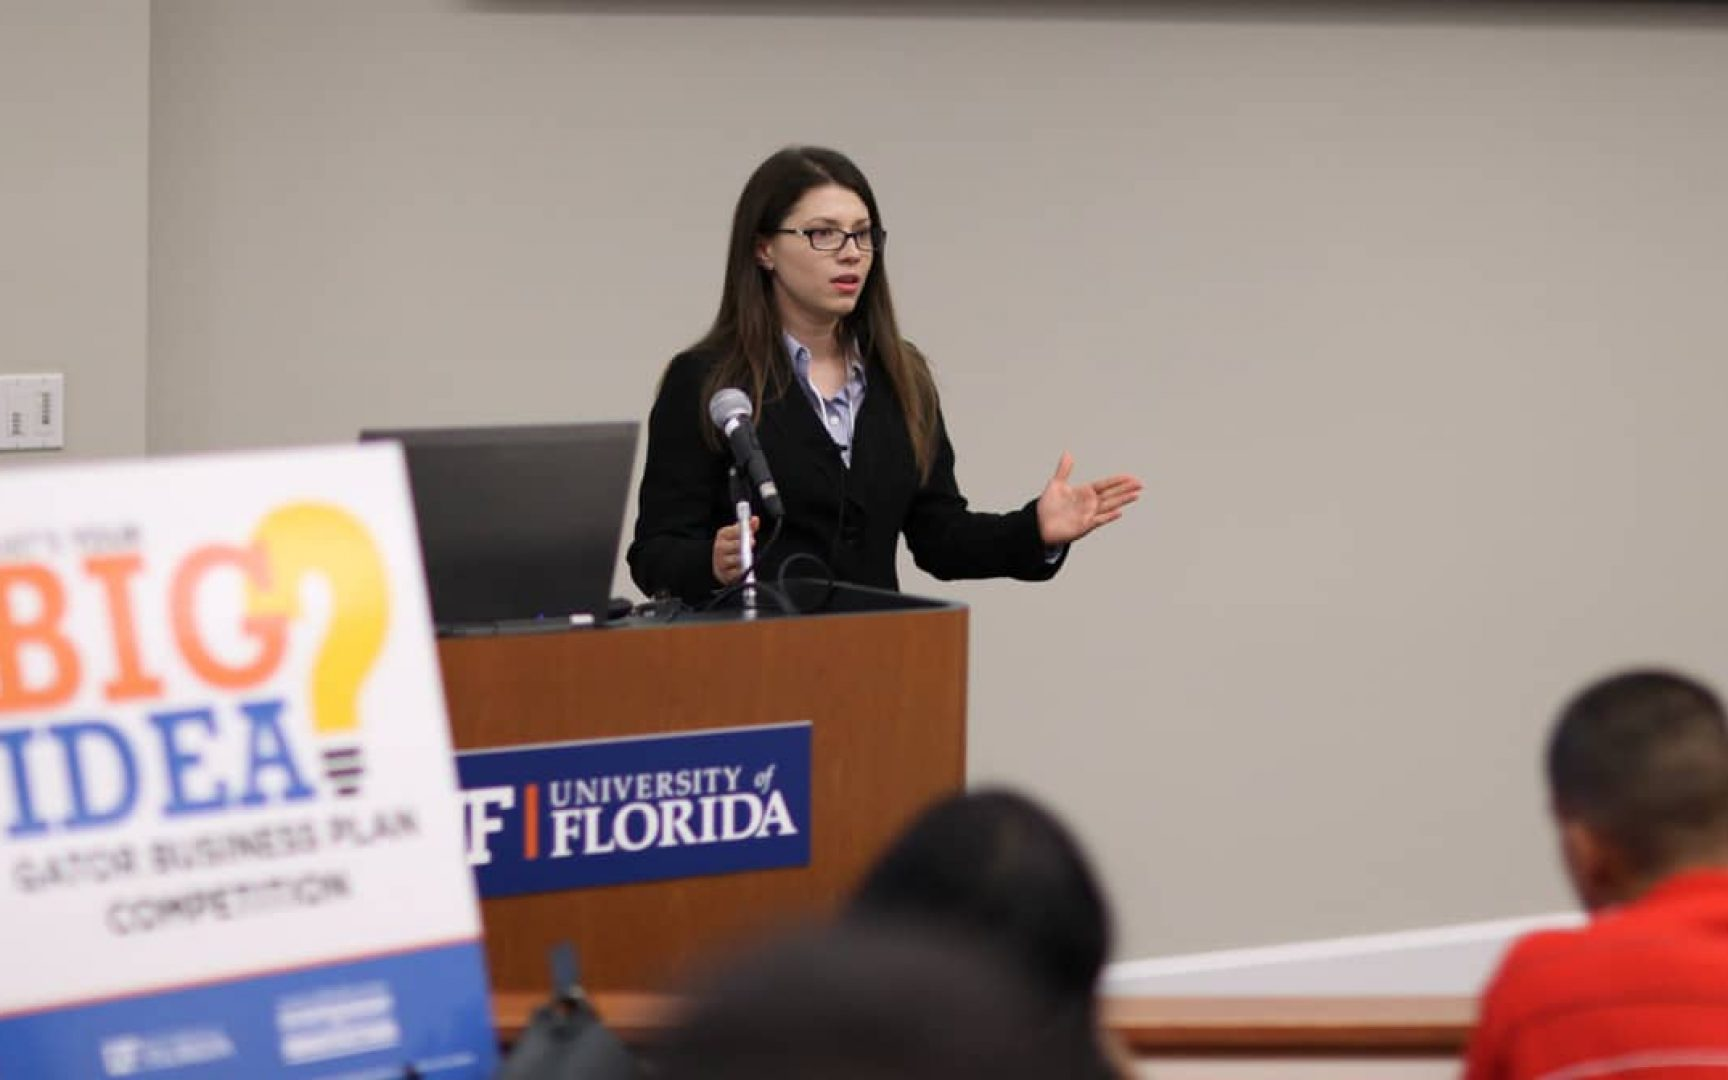 Tatiana Salazar presents in the Big Idea Gator Business Plan Competition